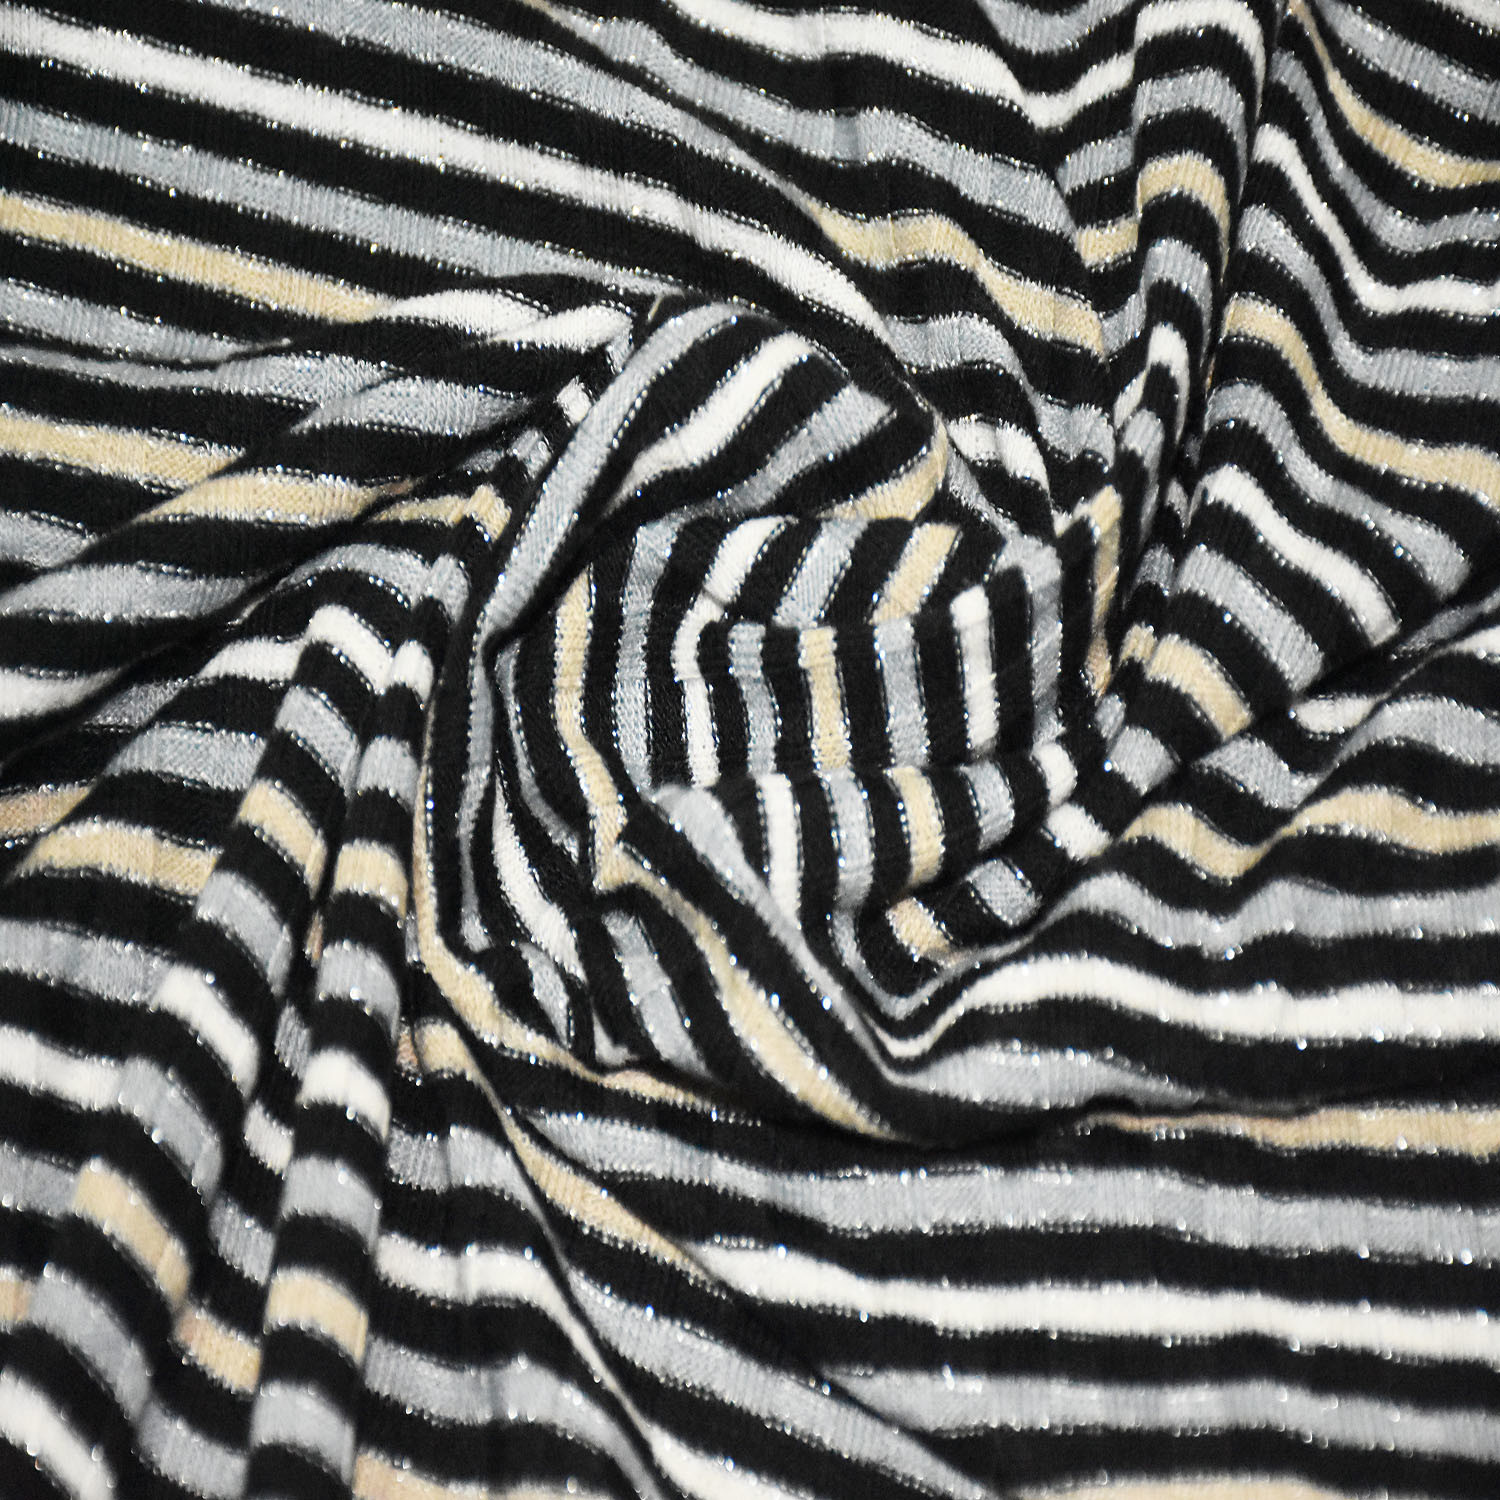 Polyester Lurex Spandex Stripe Rib Fabric for Clothing